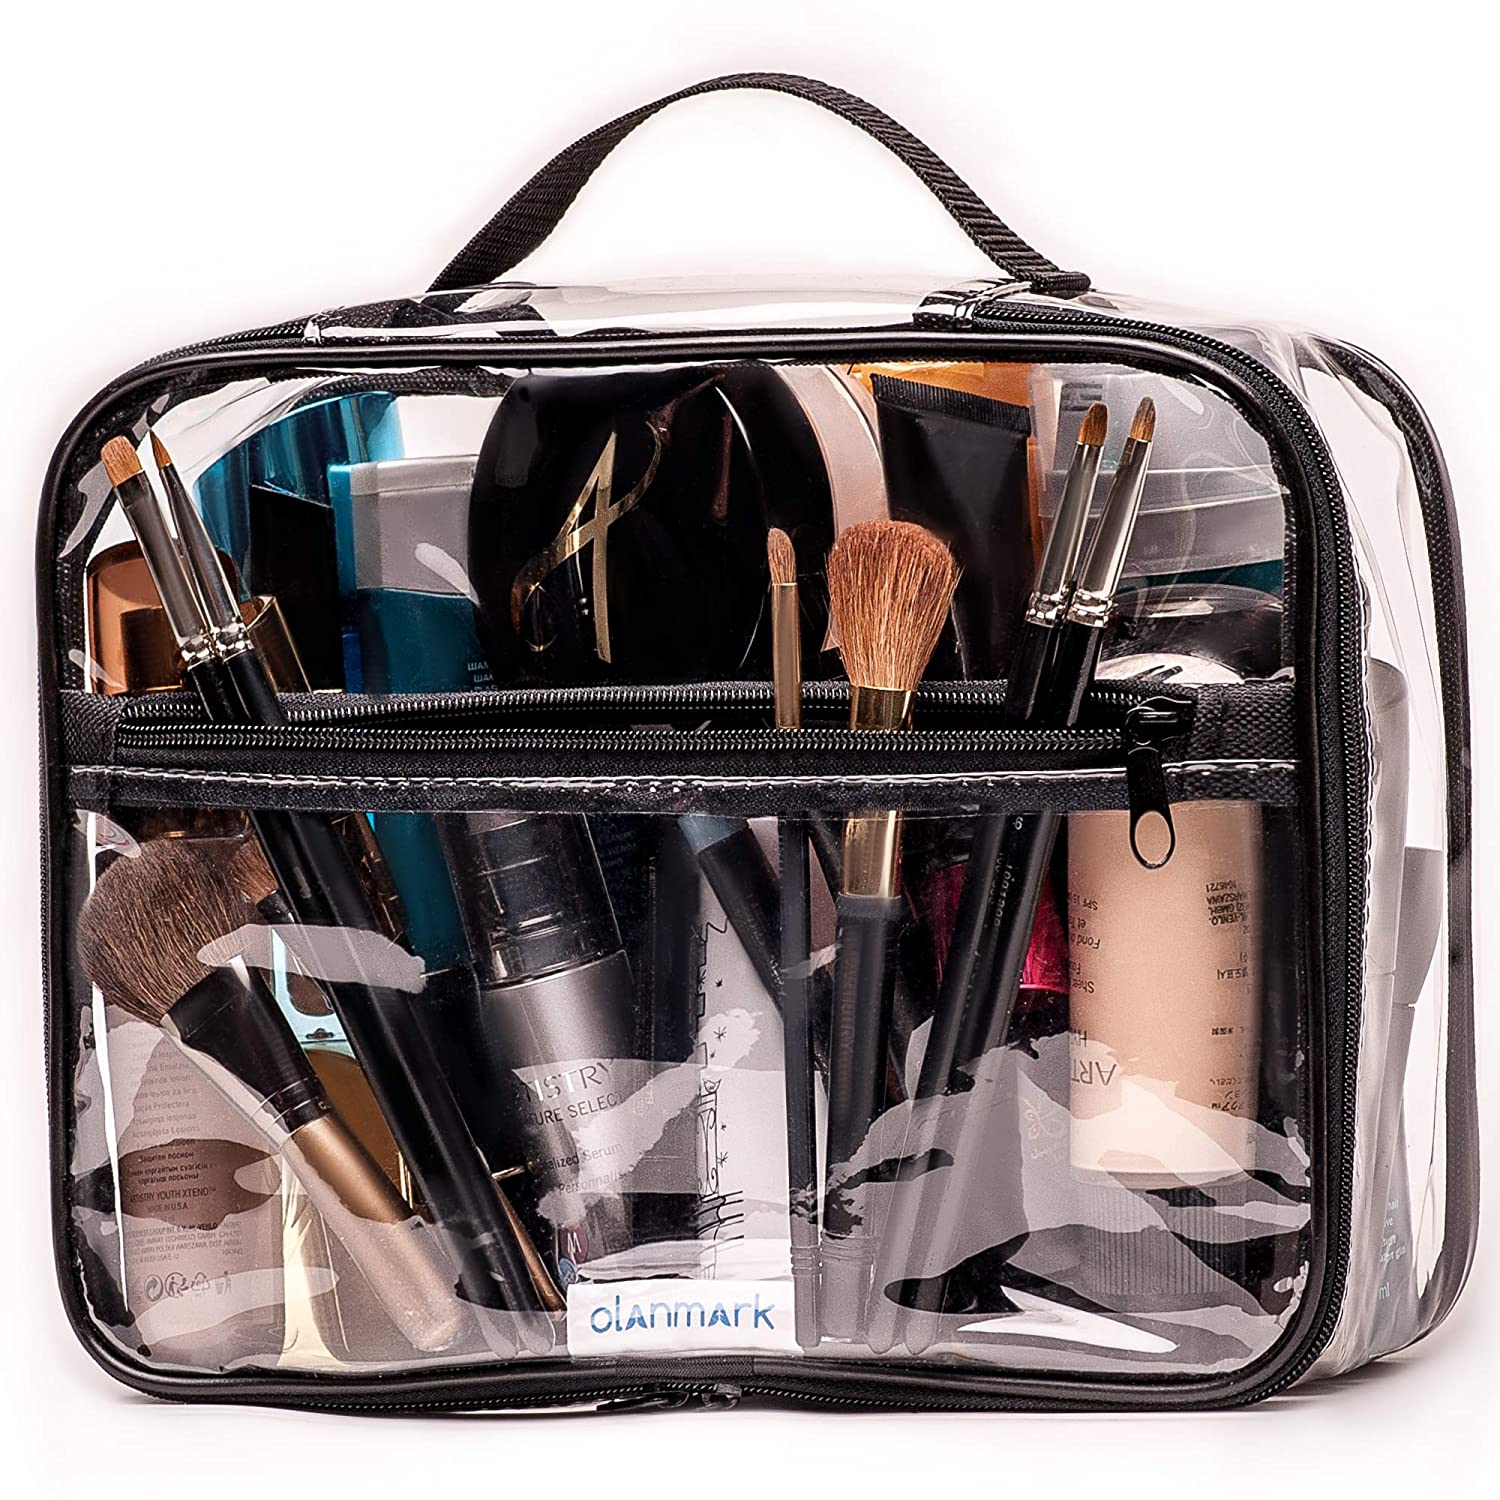 Clear Toiletry Bag – PVC Makeup Bag – Large Transparent Cosmetic Travel Case - See Through Packing Cube with Handle - Clear Bag with Zipper - Plastic Storage Pouch for Women